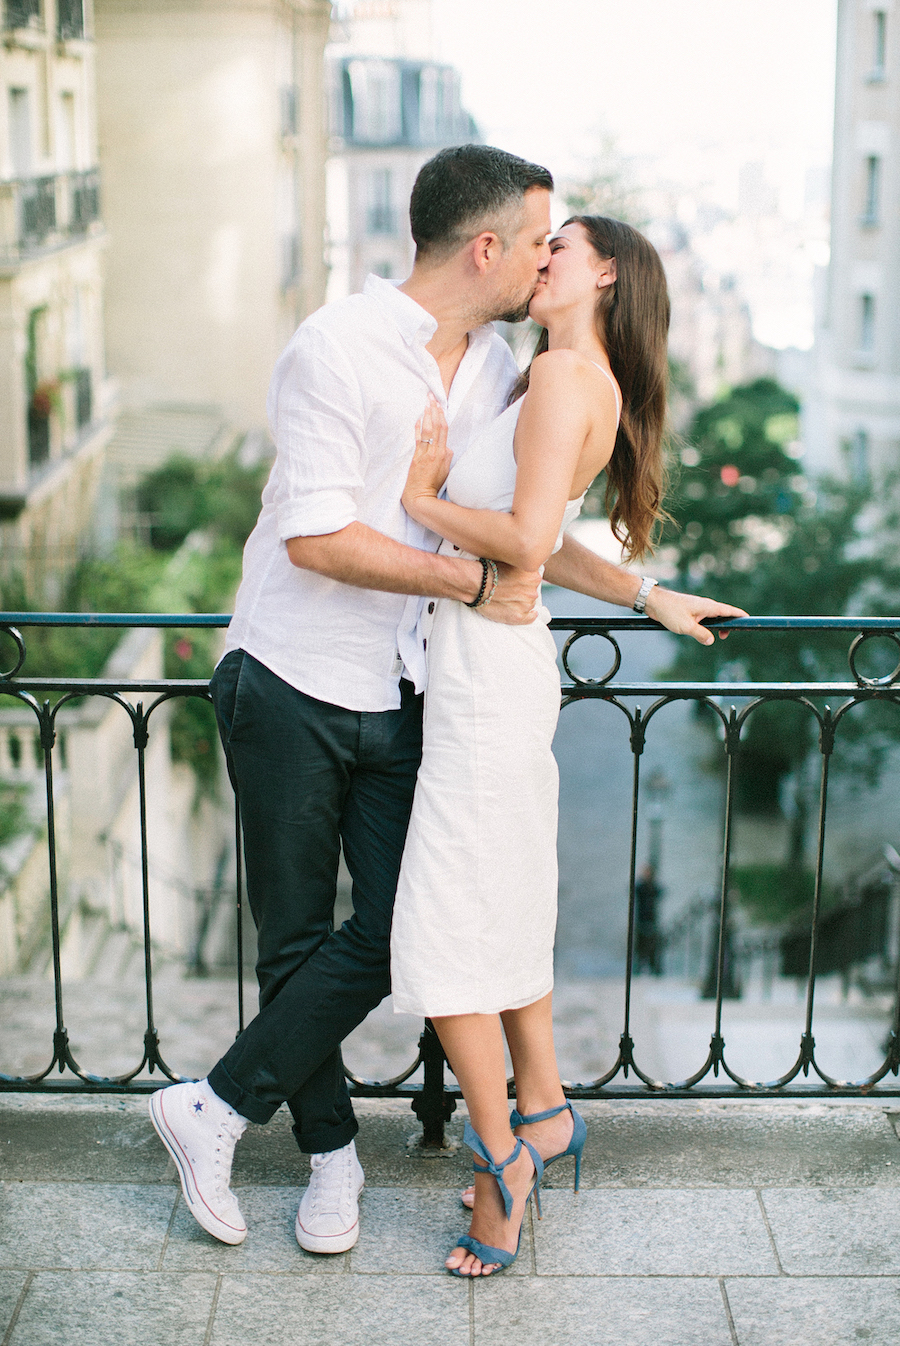 saya-photography-pre-wedding-couple-engagement-photographer-paris-montmartre-69.jpg